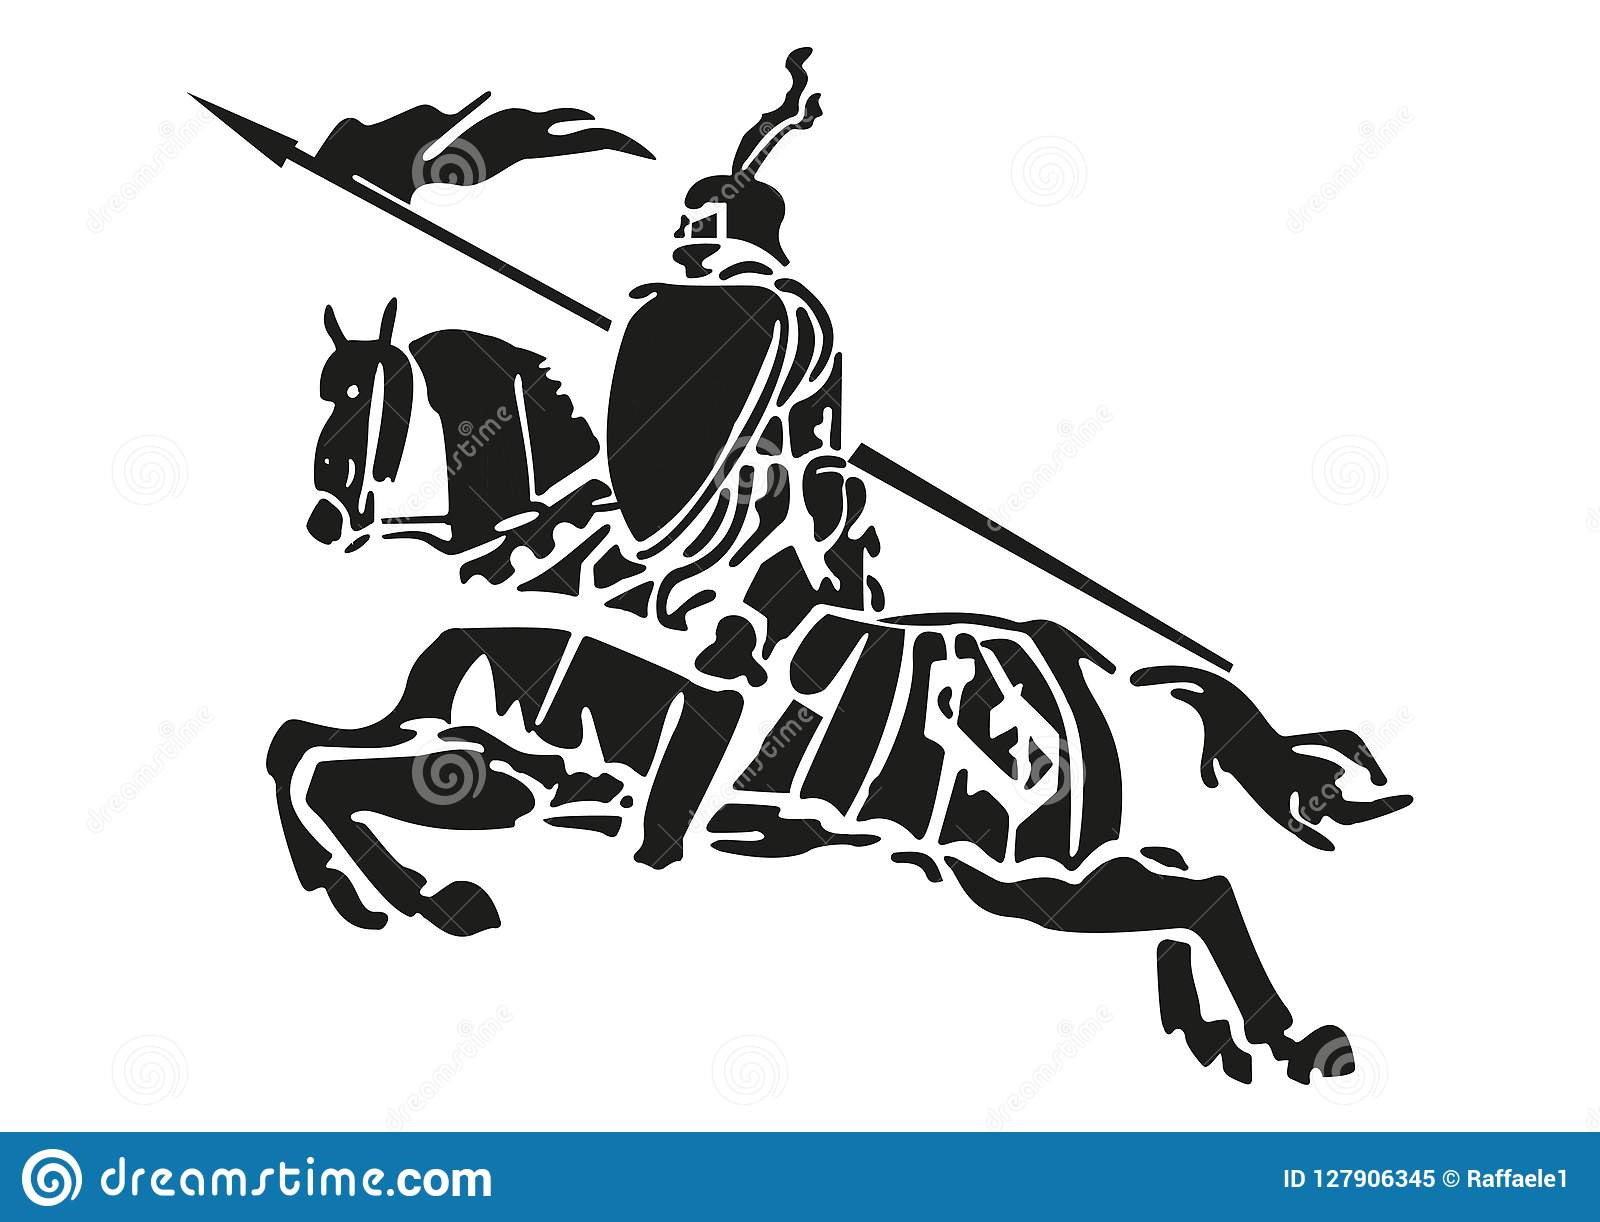 Illustration Of A Medieval Knight With Armor On A Horse Stock Vector Illustration Of Medieval Horse 127906345